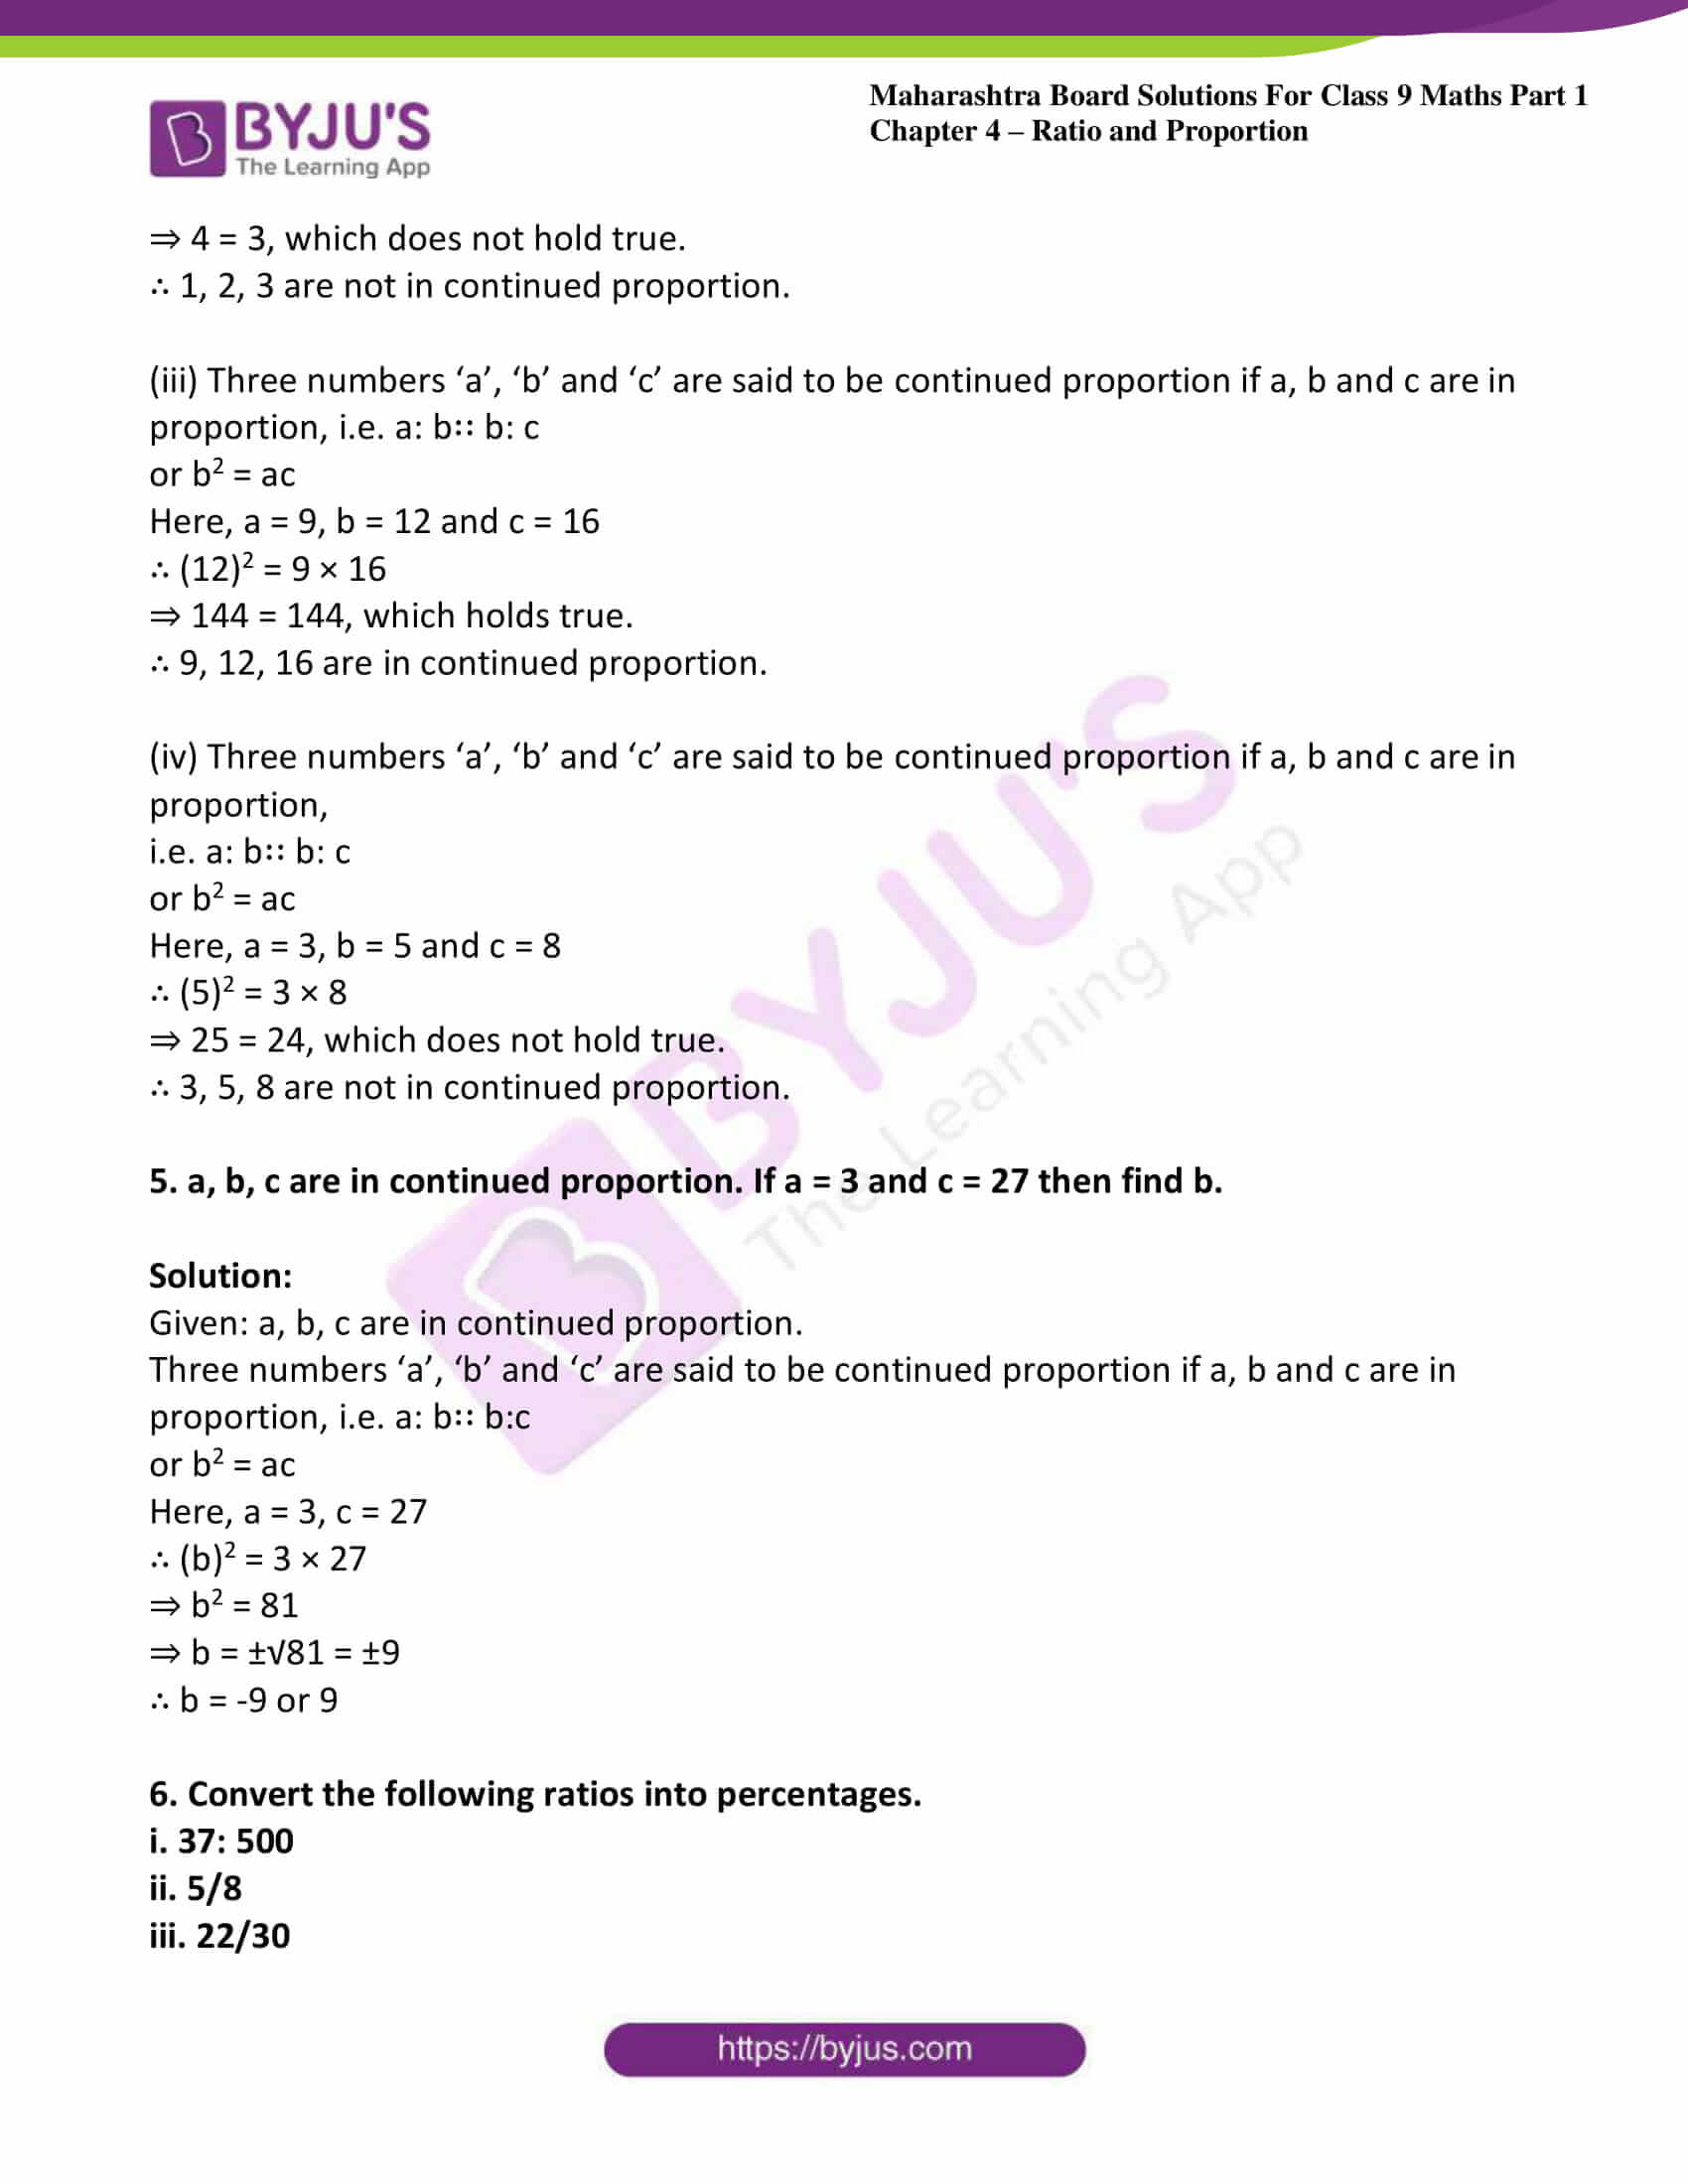 msbshse sol class 9 maths part 1 chapter 4 ratio and proportion 31